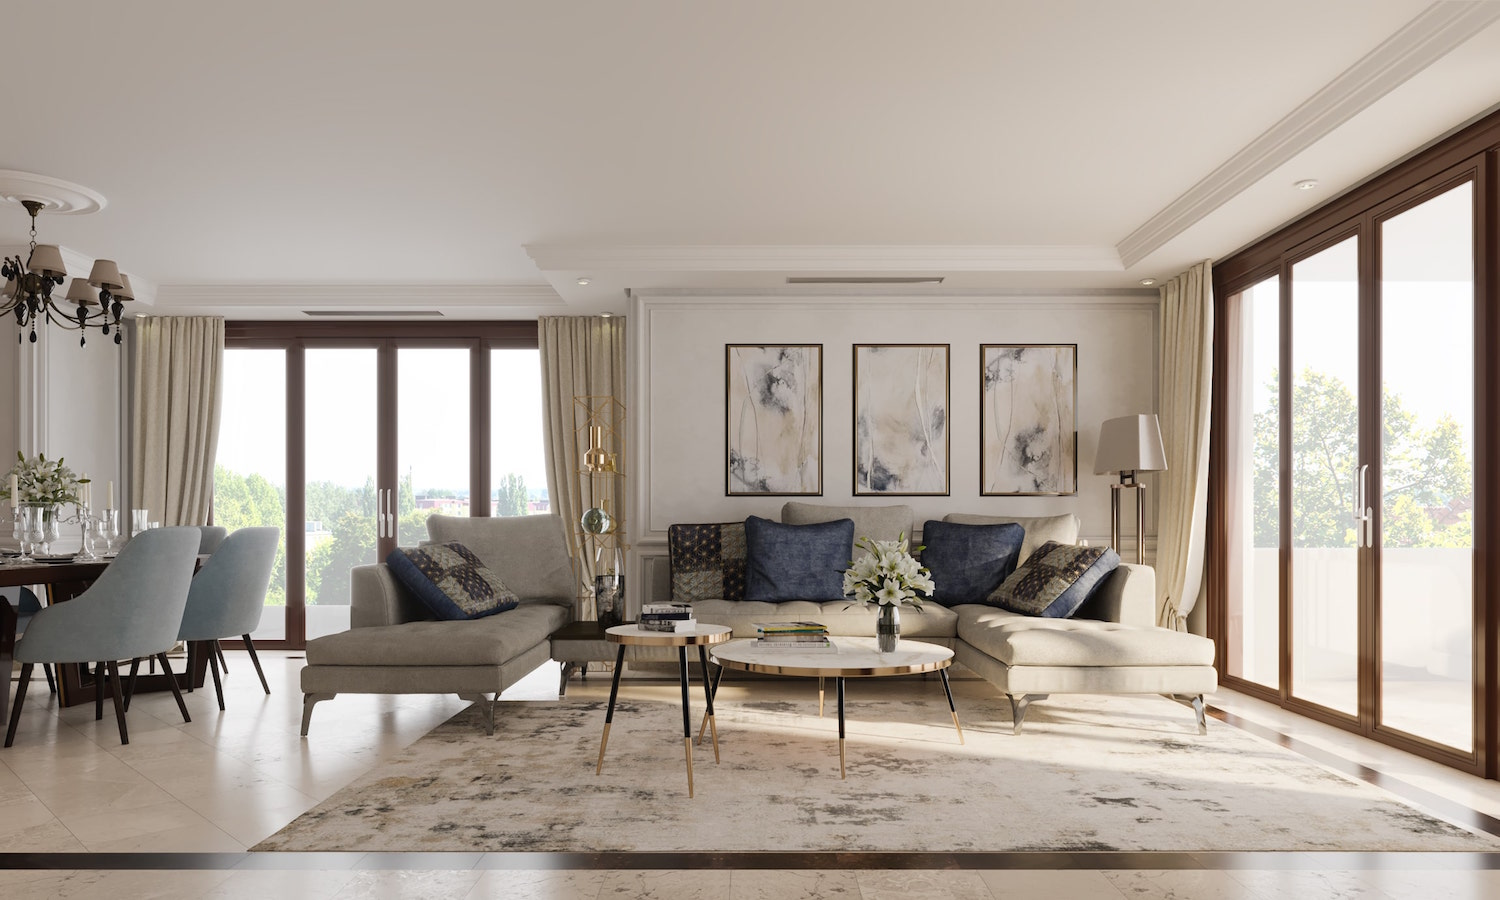 Interior Design Of The Apartment In Estepona Spain L Essenziale,Wall Art Modern Dining Room Wall Decor